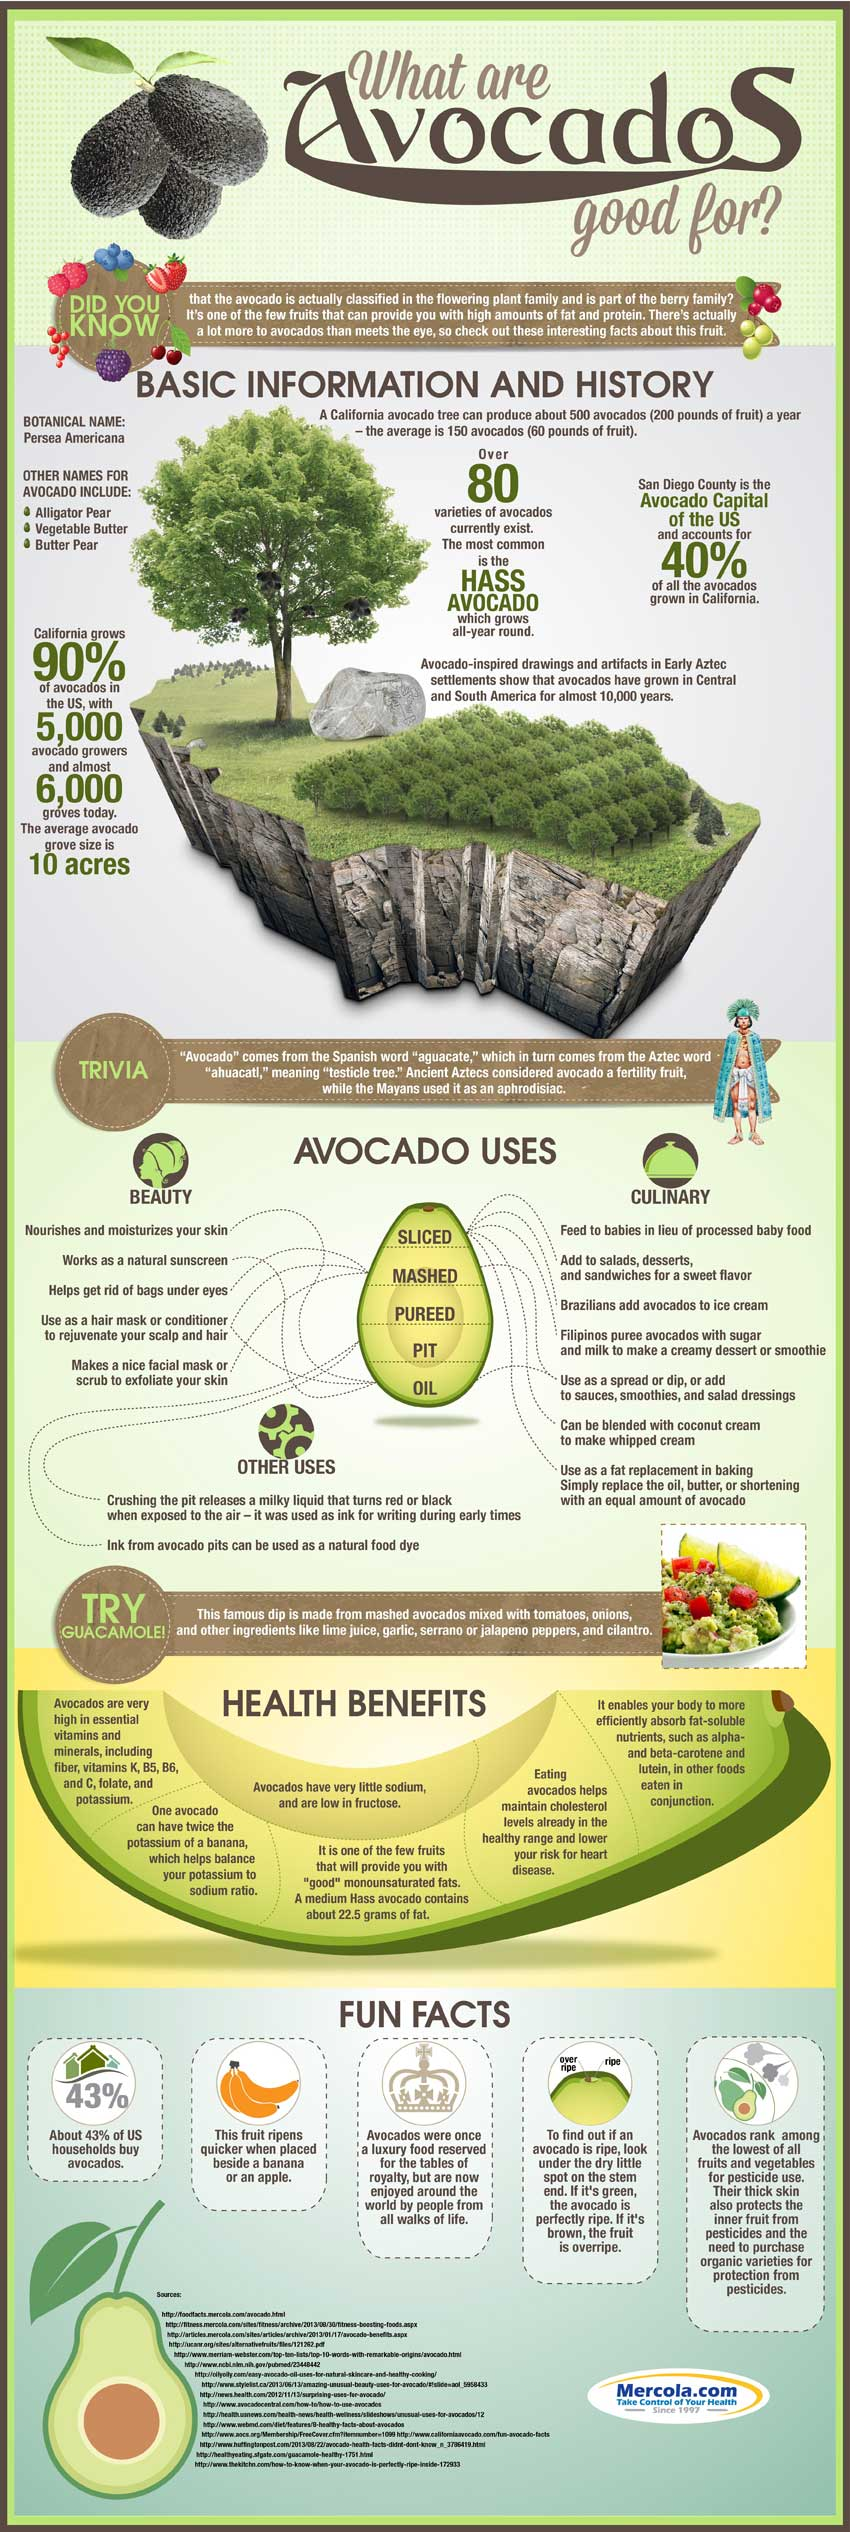 15 Benefits of Using Avocados for Health and Beauty Infographic